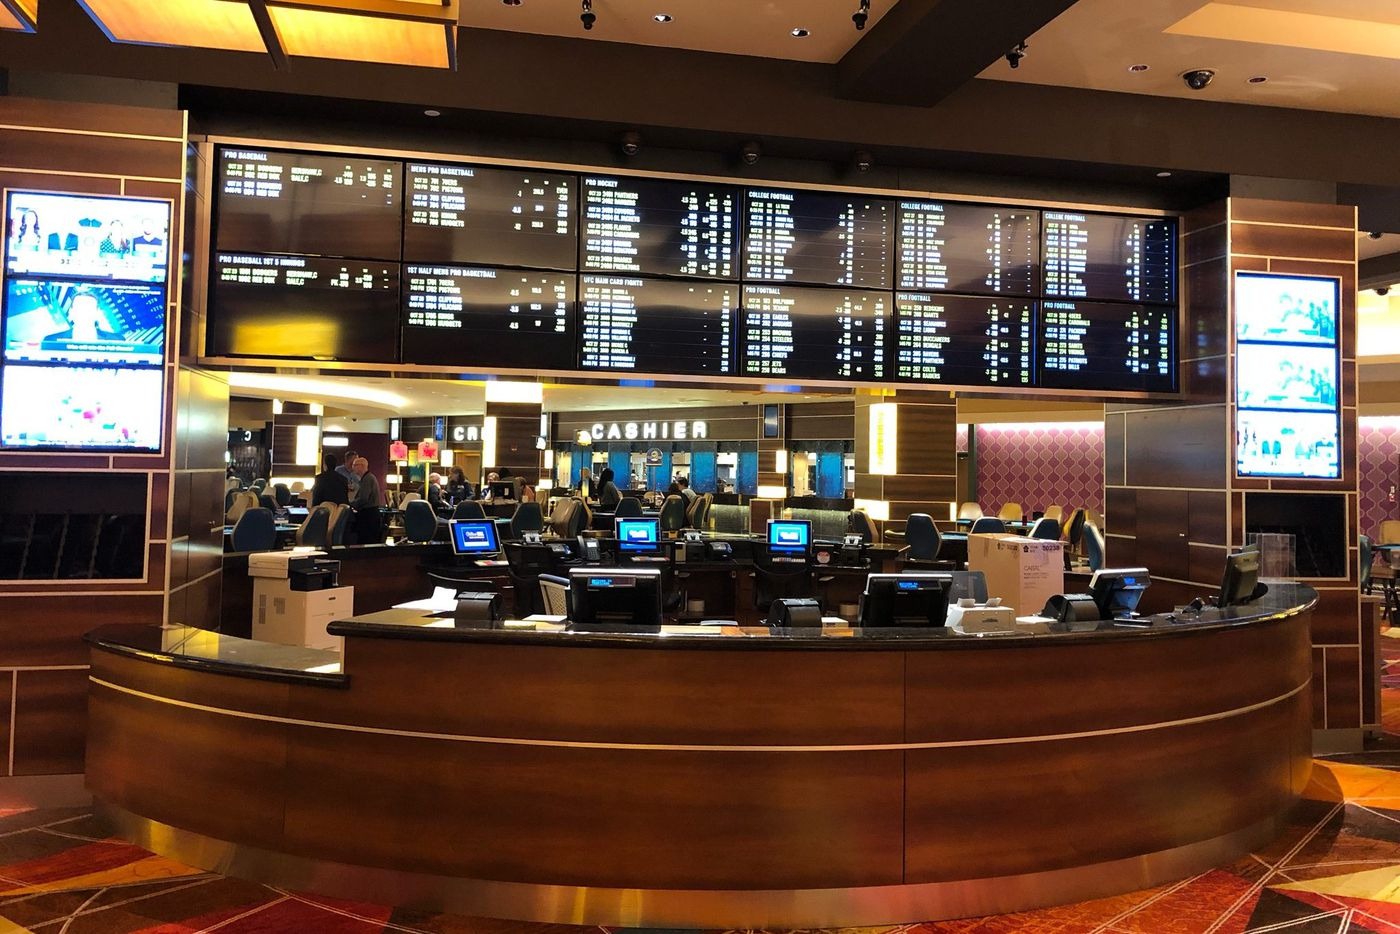 Tropicana expected to open its sportsbook within days   Sports betting